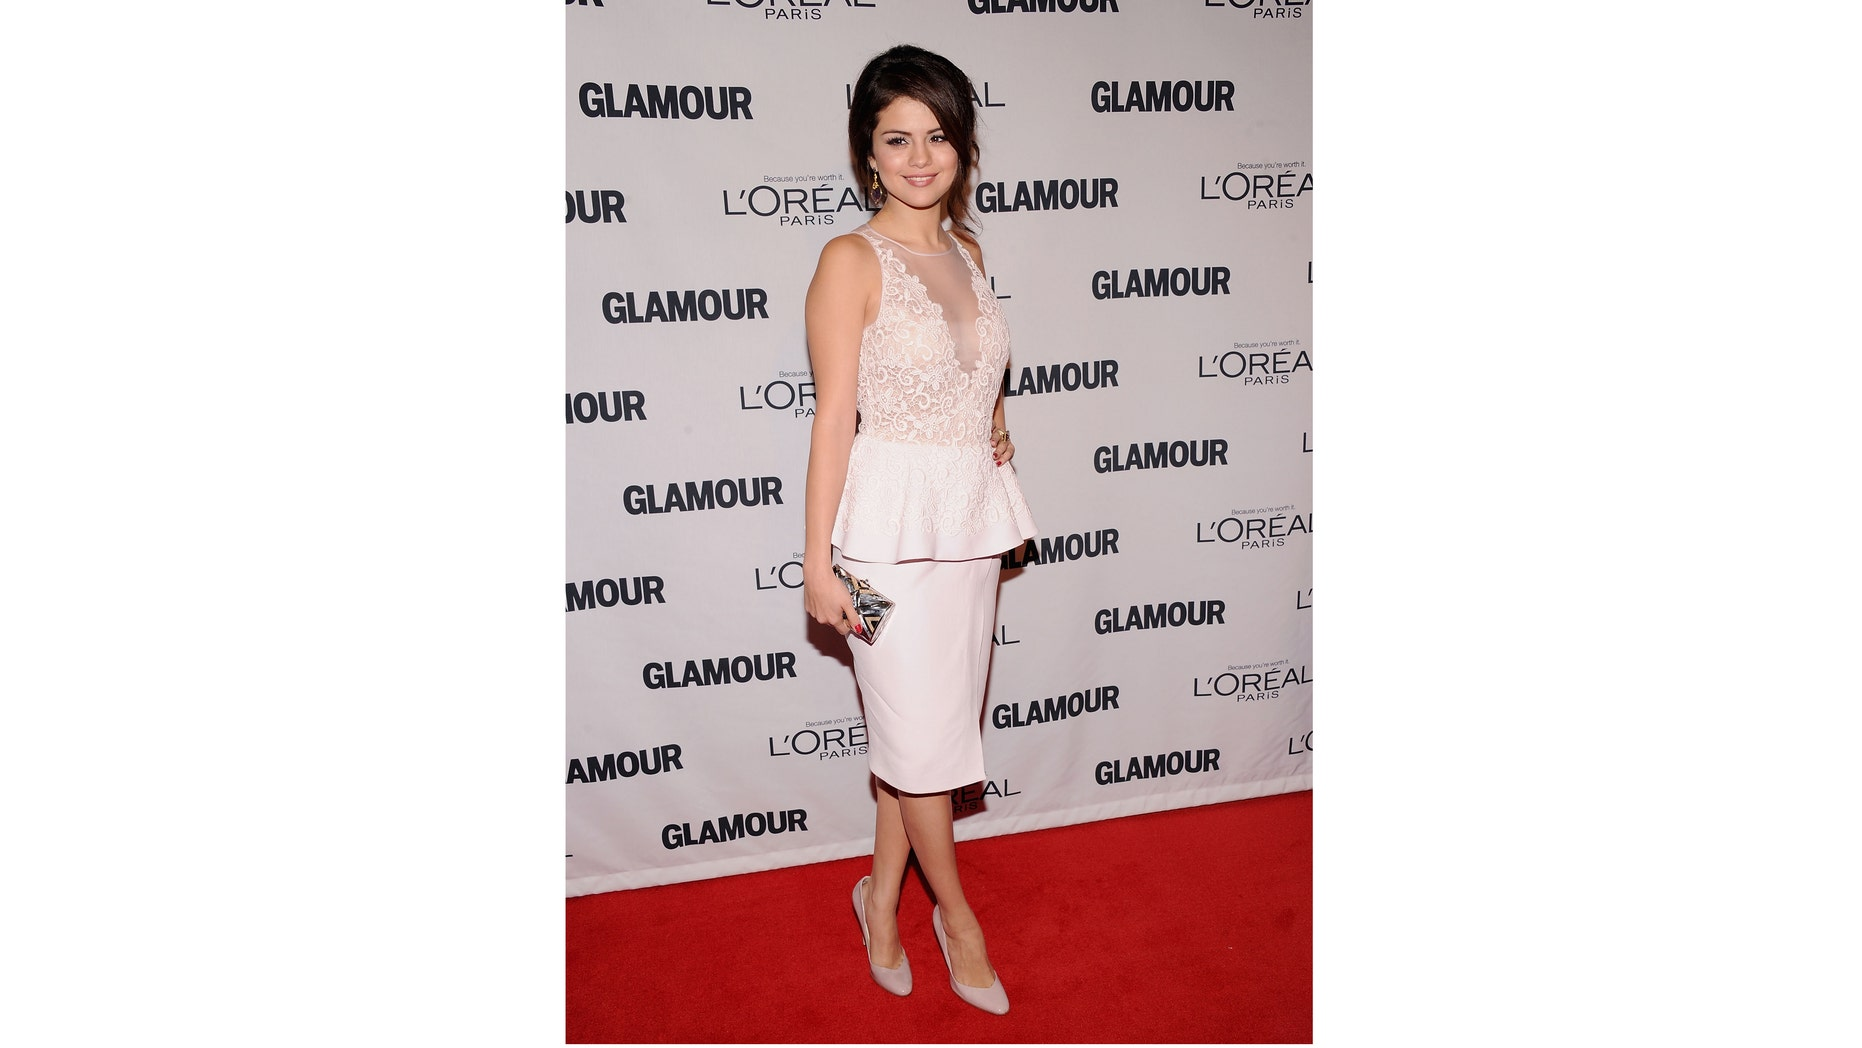 Nov. 12, 2012: Selena Gomez attends the 22nd annual Glamour Women of the Year Awards at Carnegie Hall in New York City.